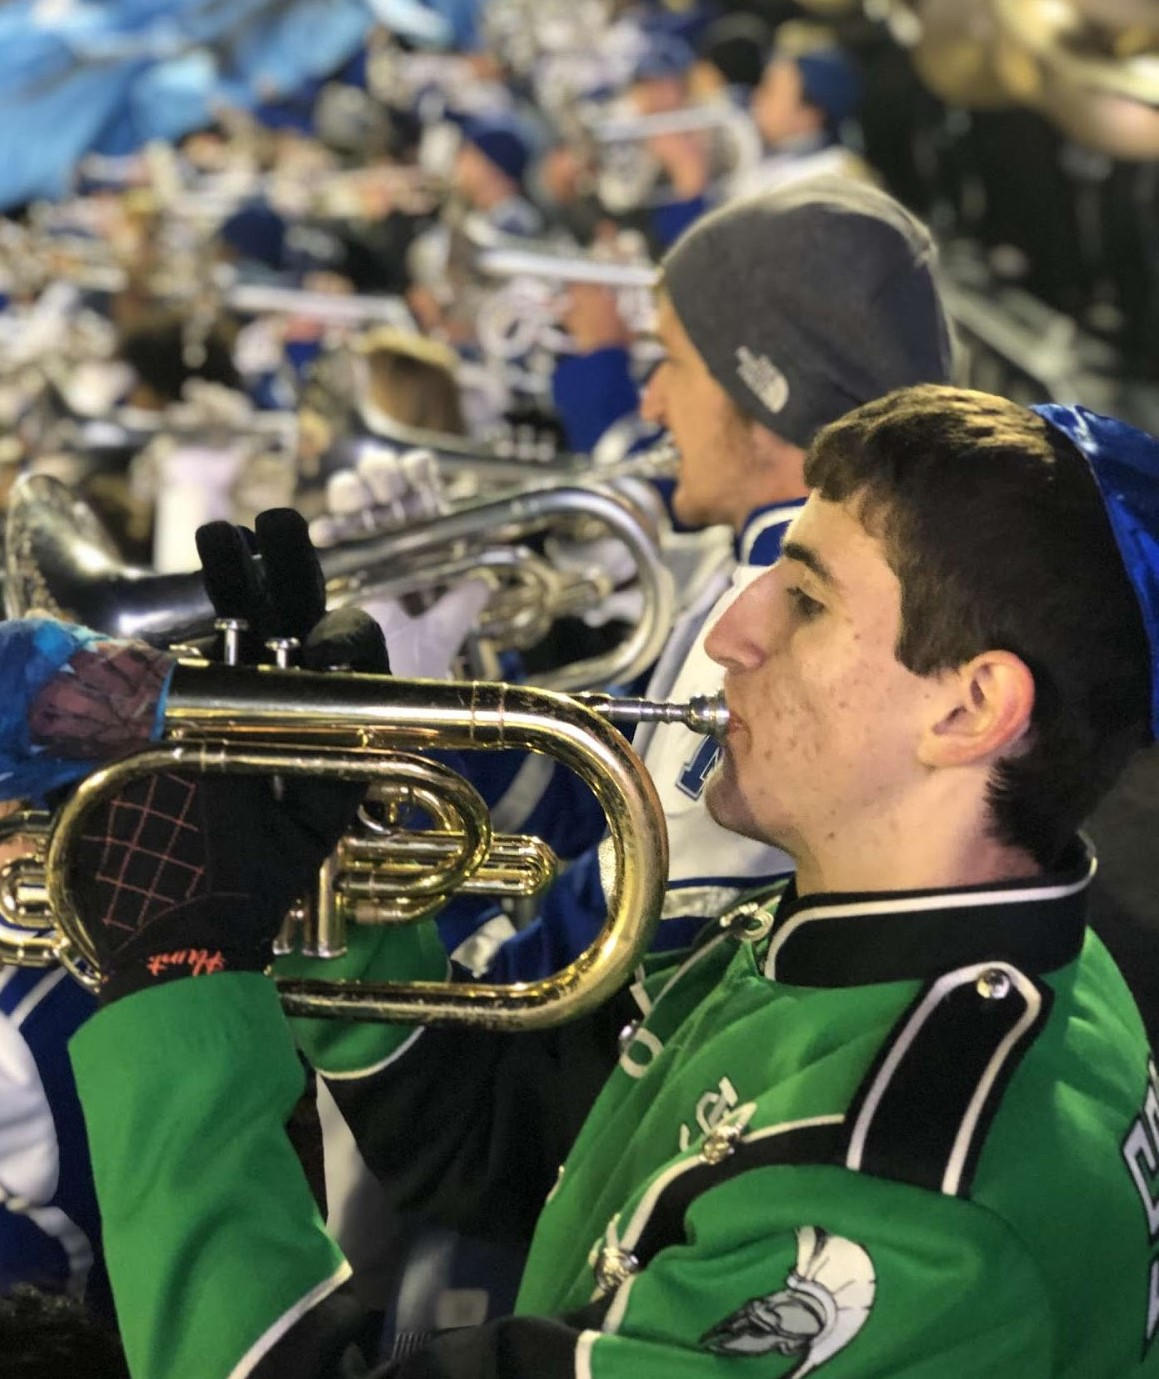 Cody Hunter performs alongside fellow mellophone players from the University of Memphis marching band. Cody attended his third Band Day this year and learned new skills from U of M students, despite being a senior.